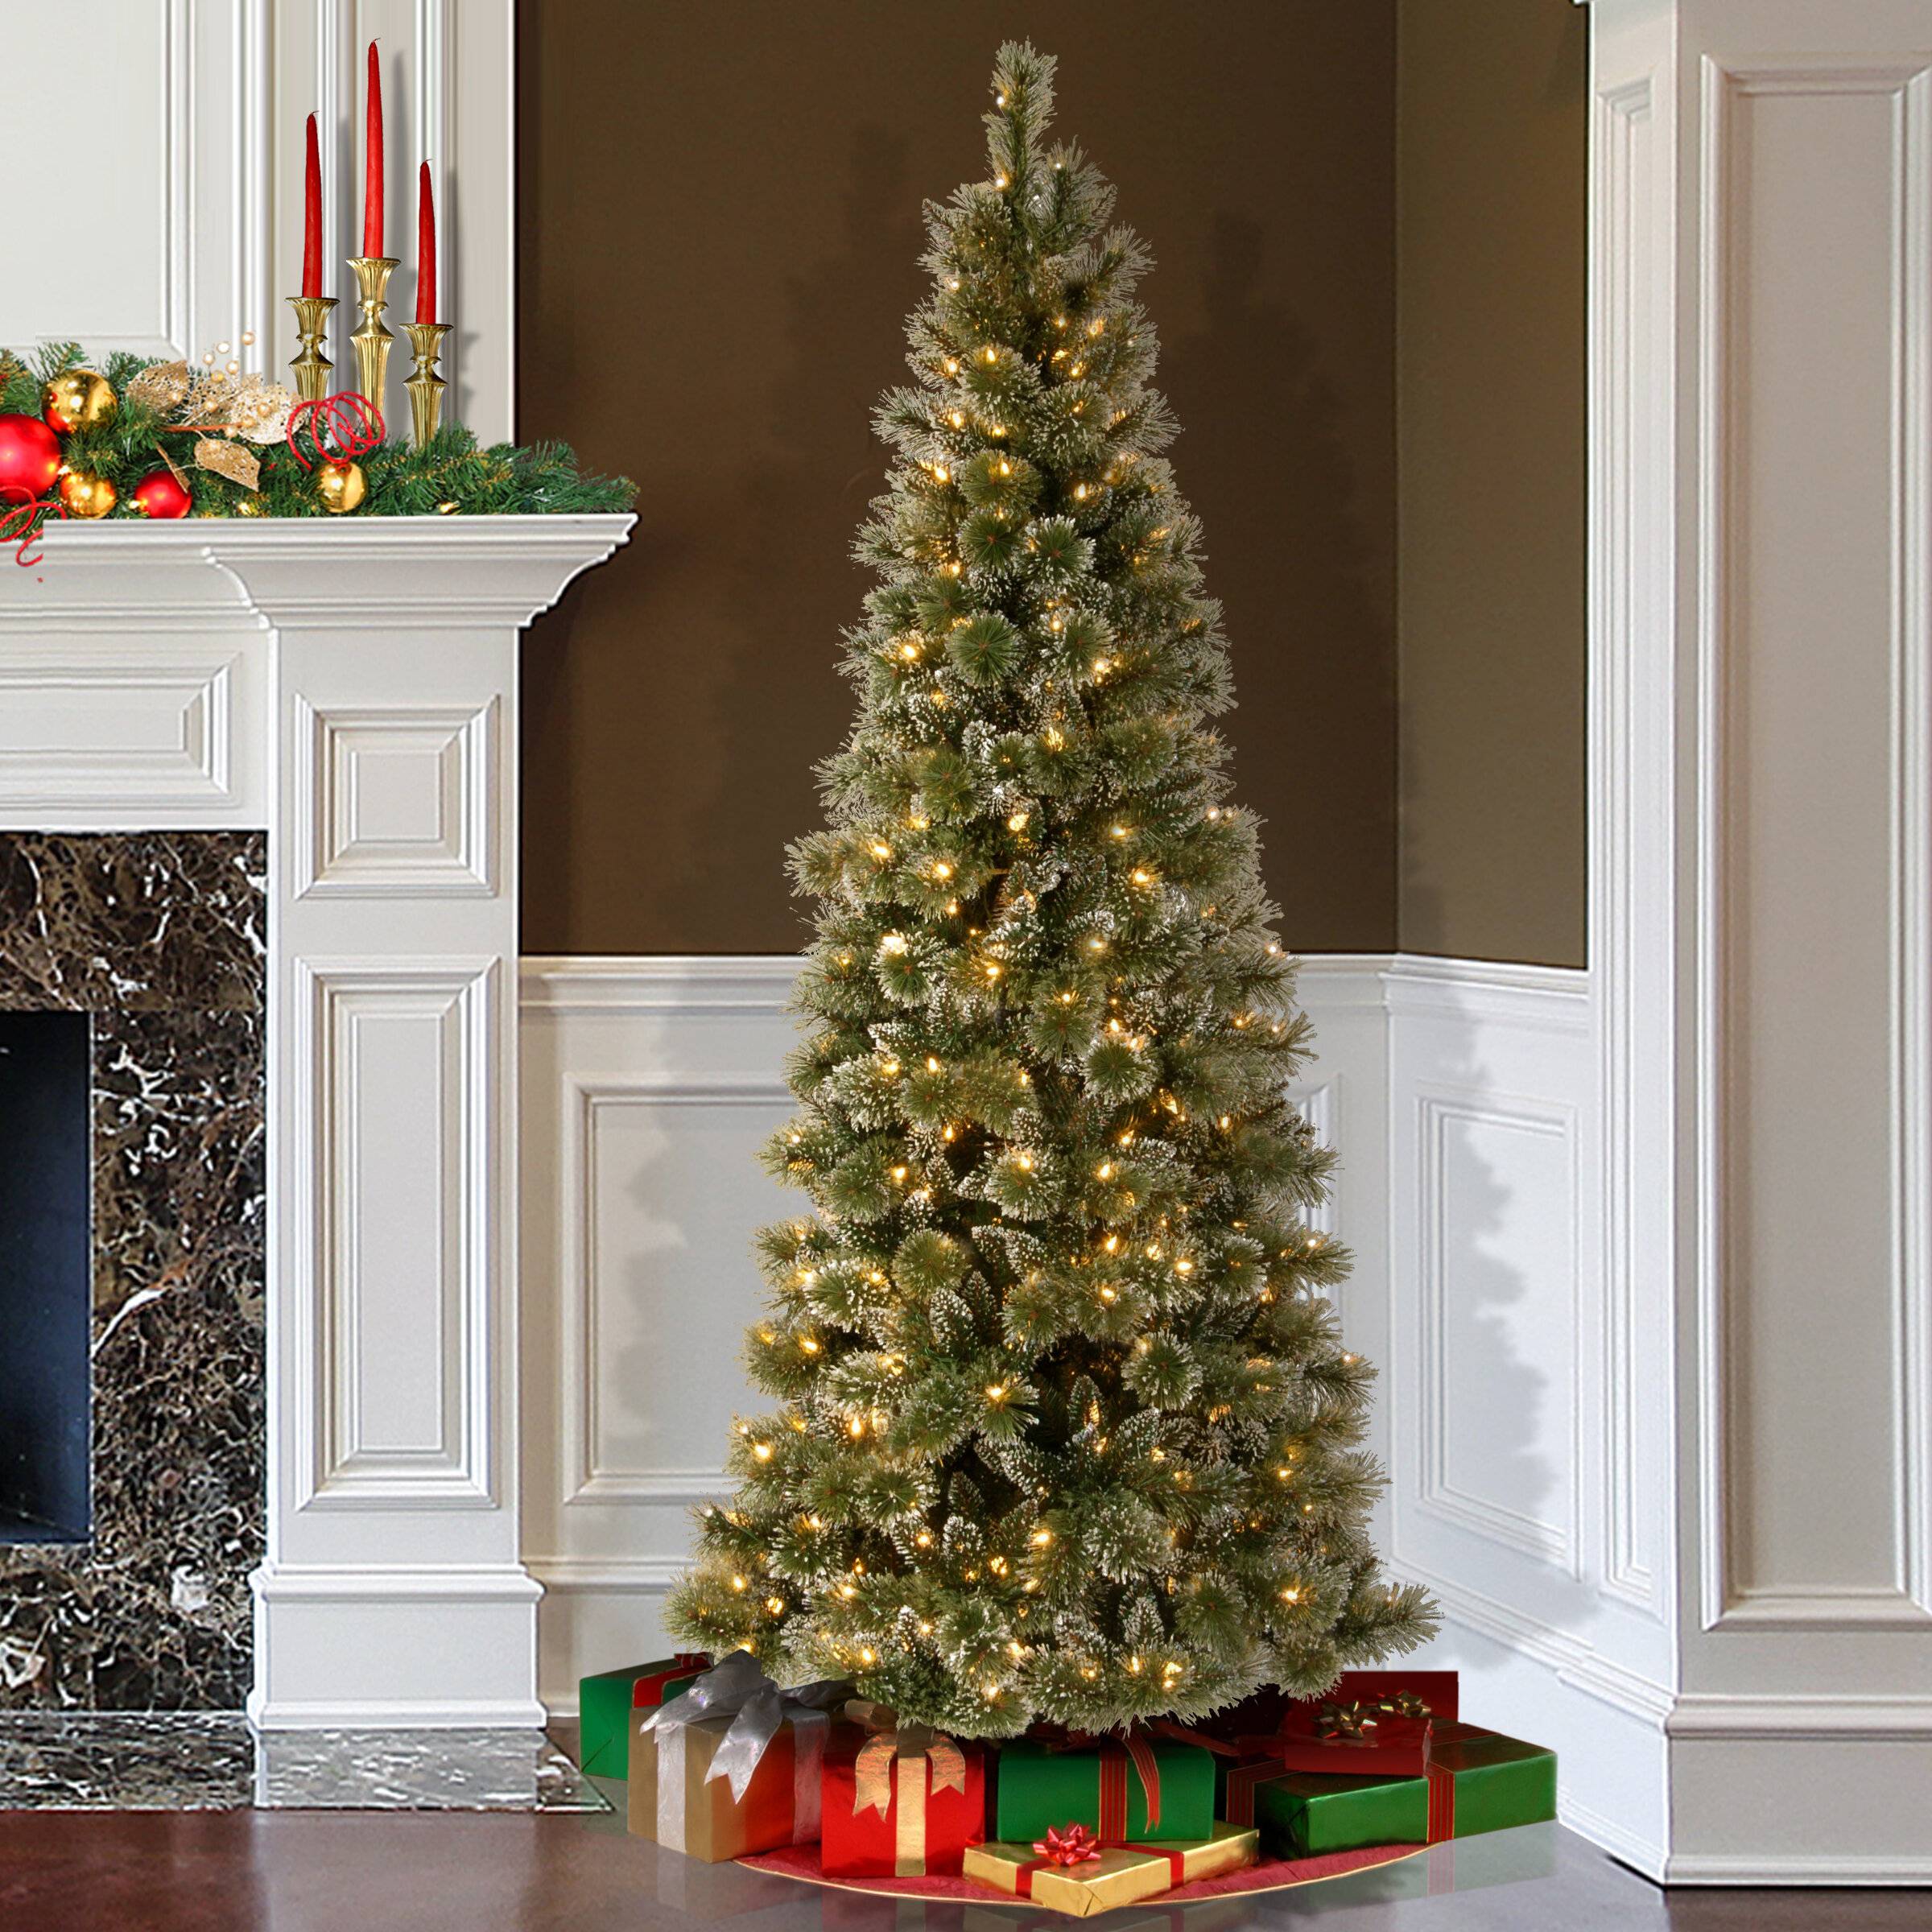 darby home co pine 75 green slim artificial christmas tree with 600 soft white led lights with stand reviews wayfair - Slim Christmas Tree With Led Lights